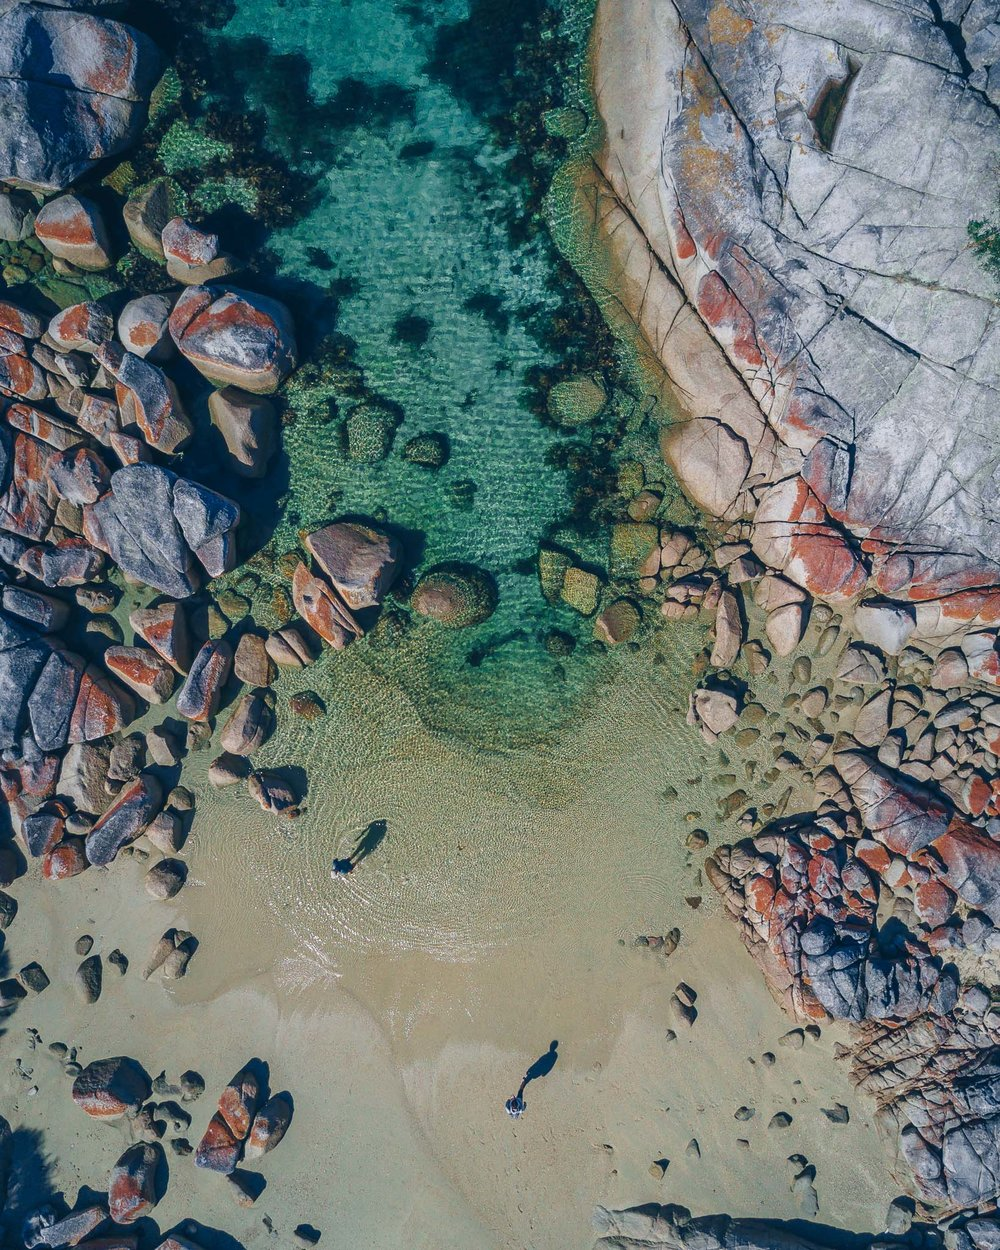 The Bay of Fires from above